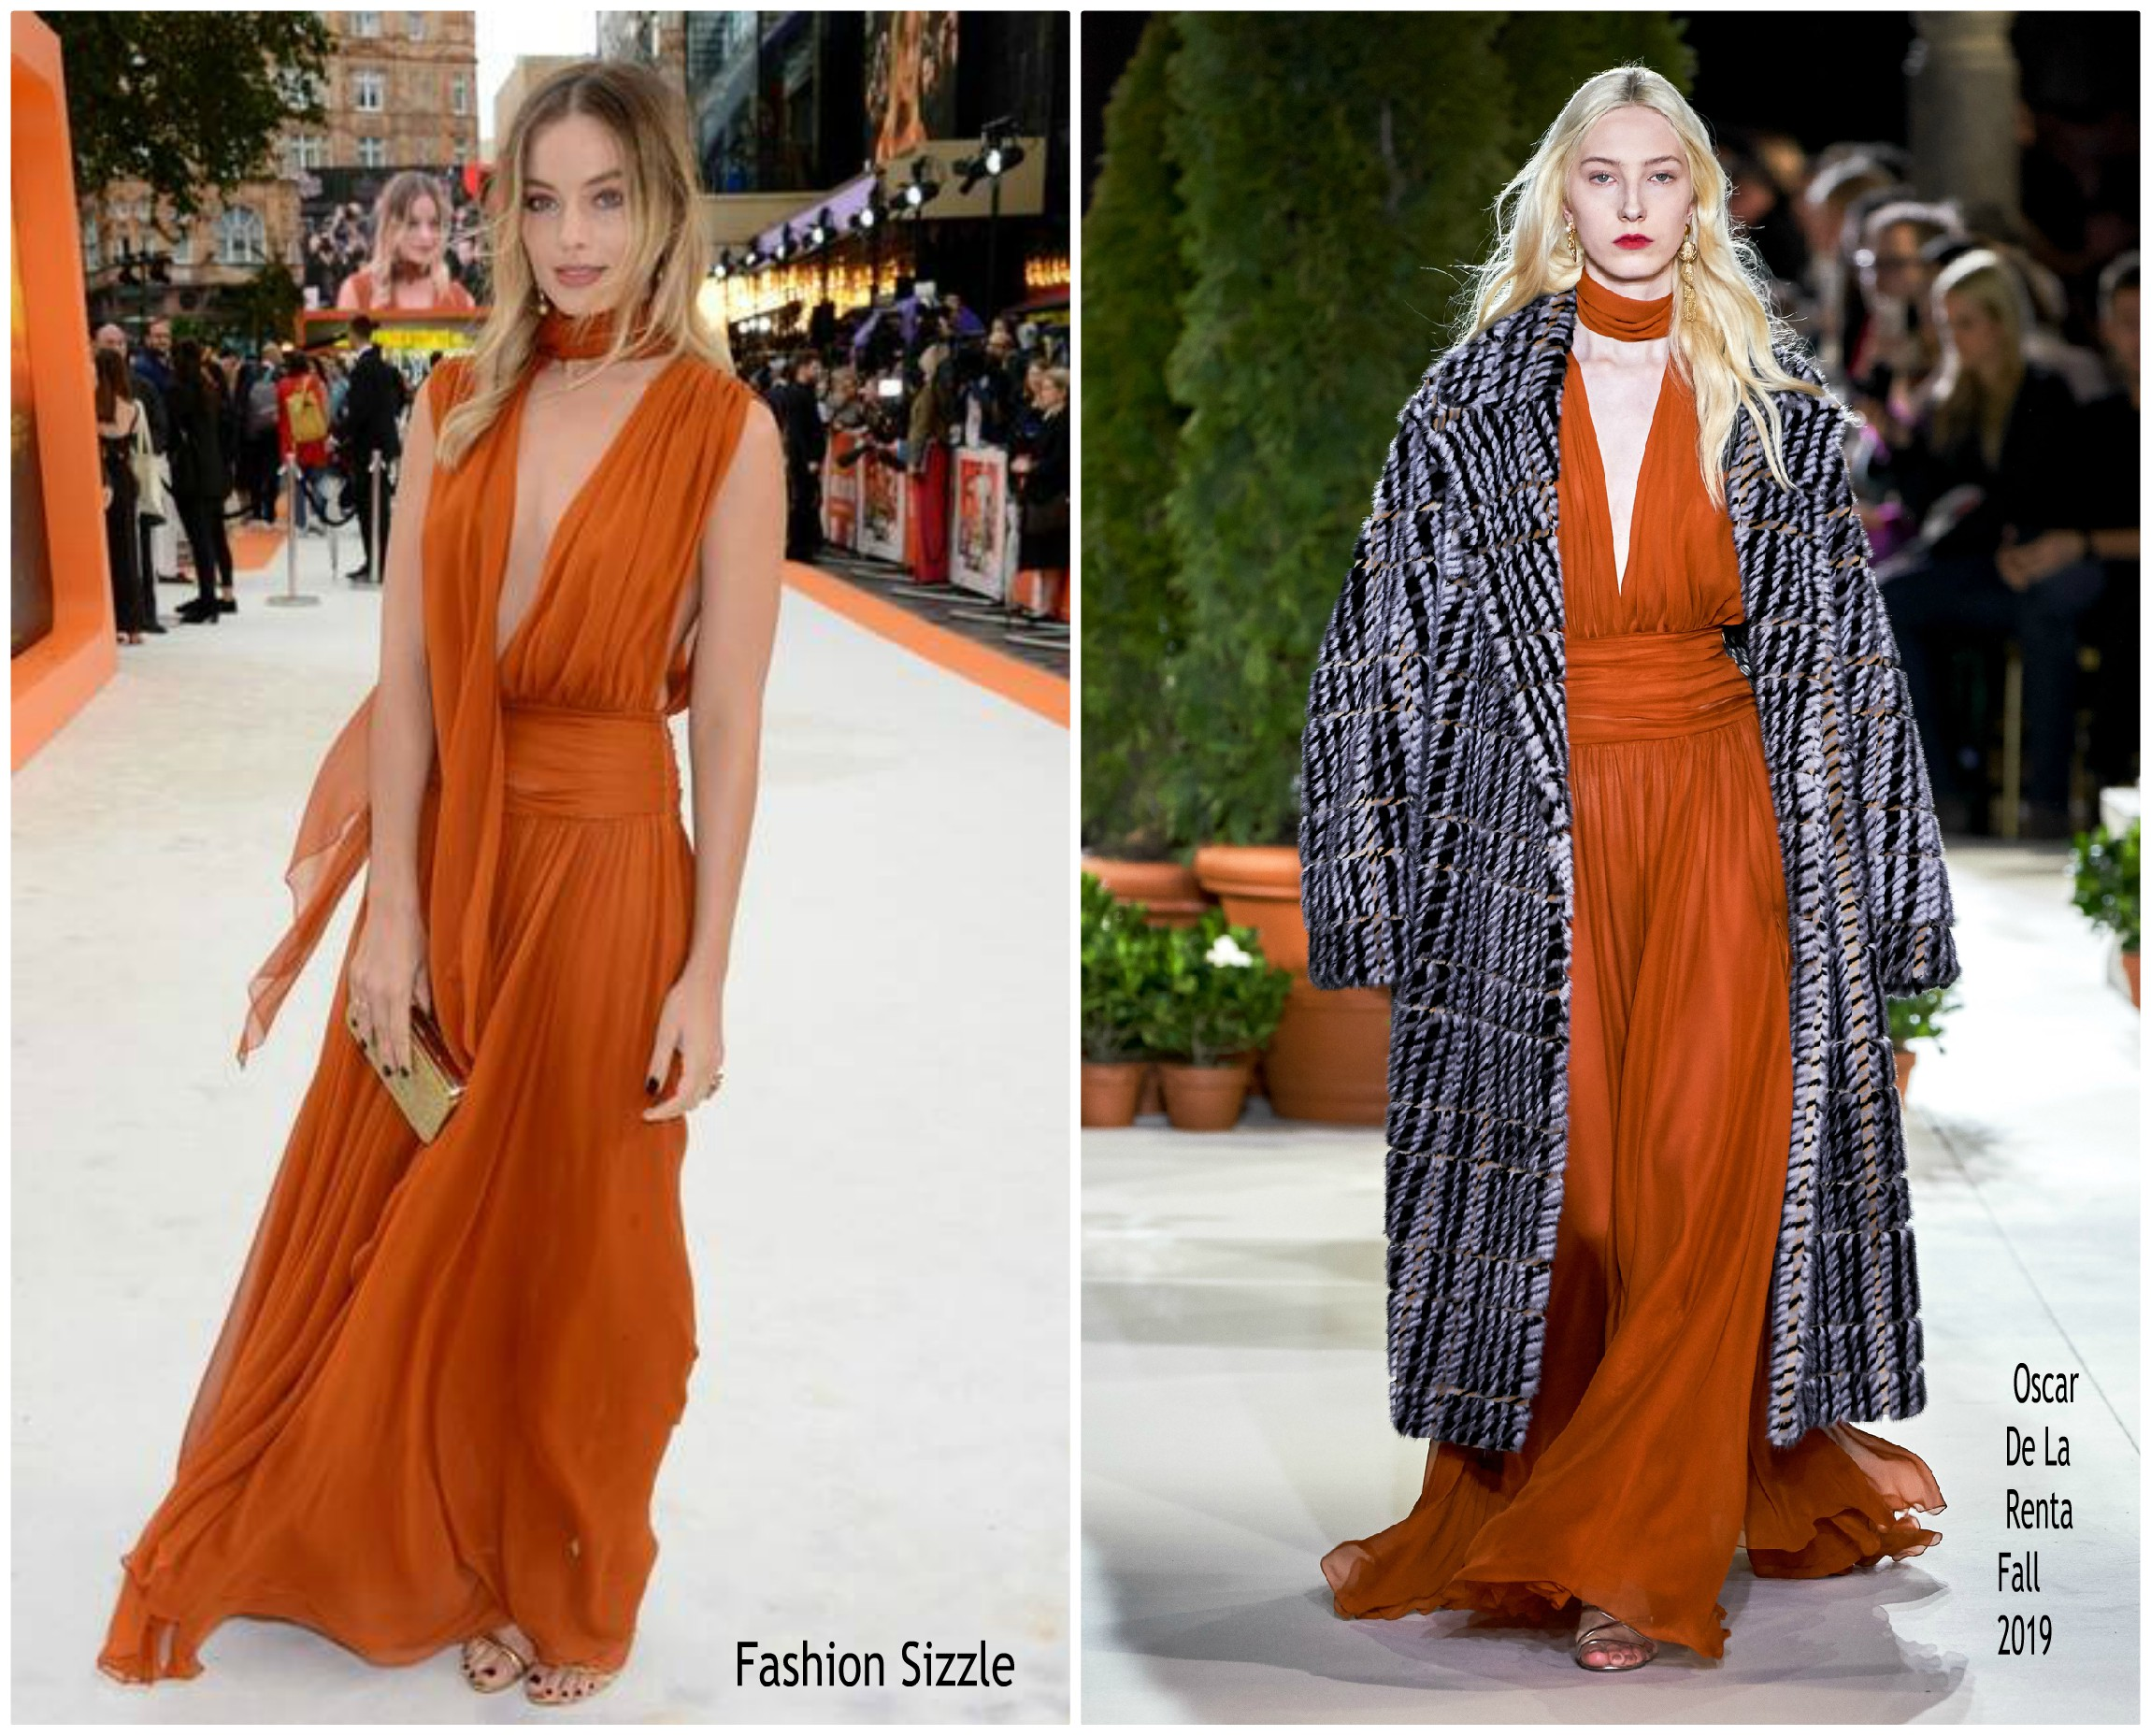 margot-robbie-in-oscar-de-la-renta-once-upon-a-time-in-hollywood-london-premiere